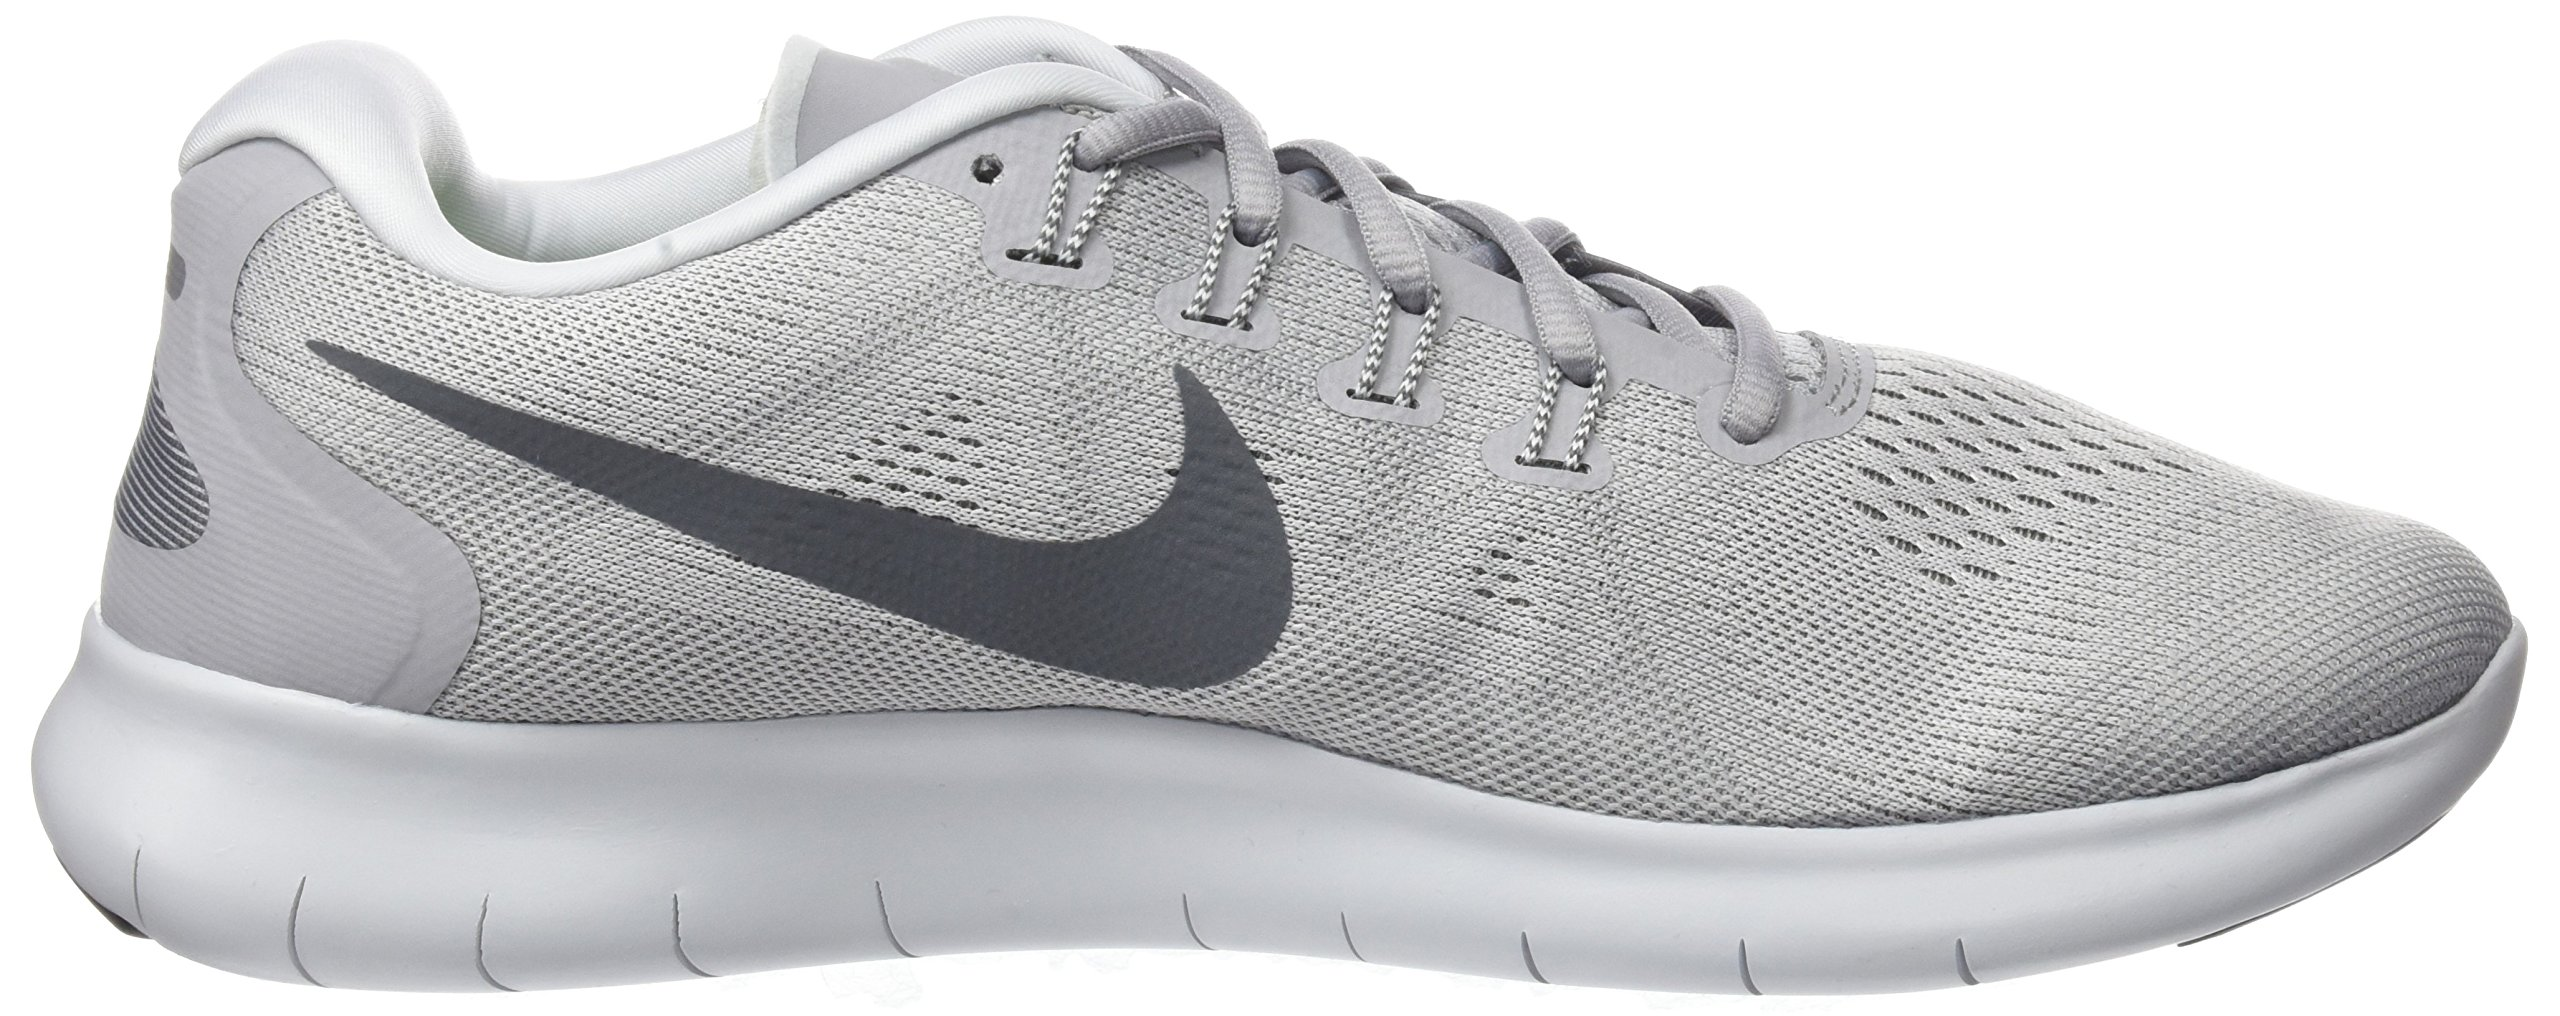 NIKE Men's Free RN 2017 Running Shoe 7.5 by Nike (Image #6)